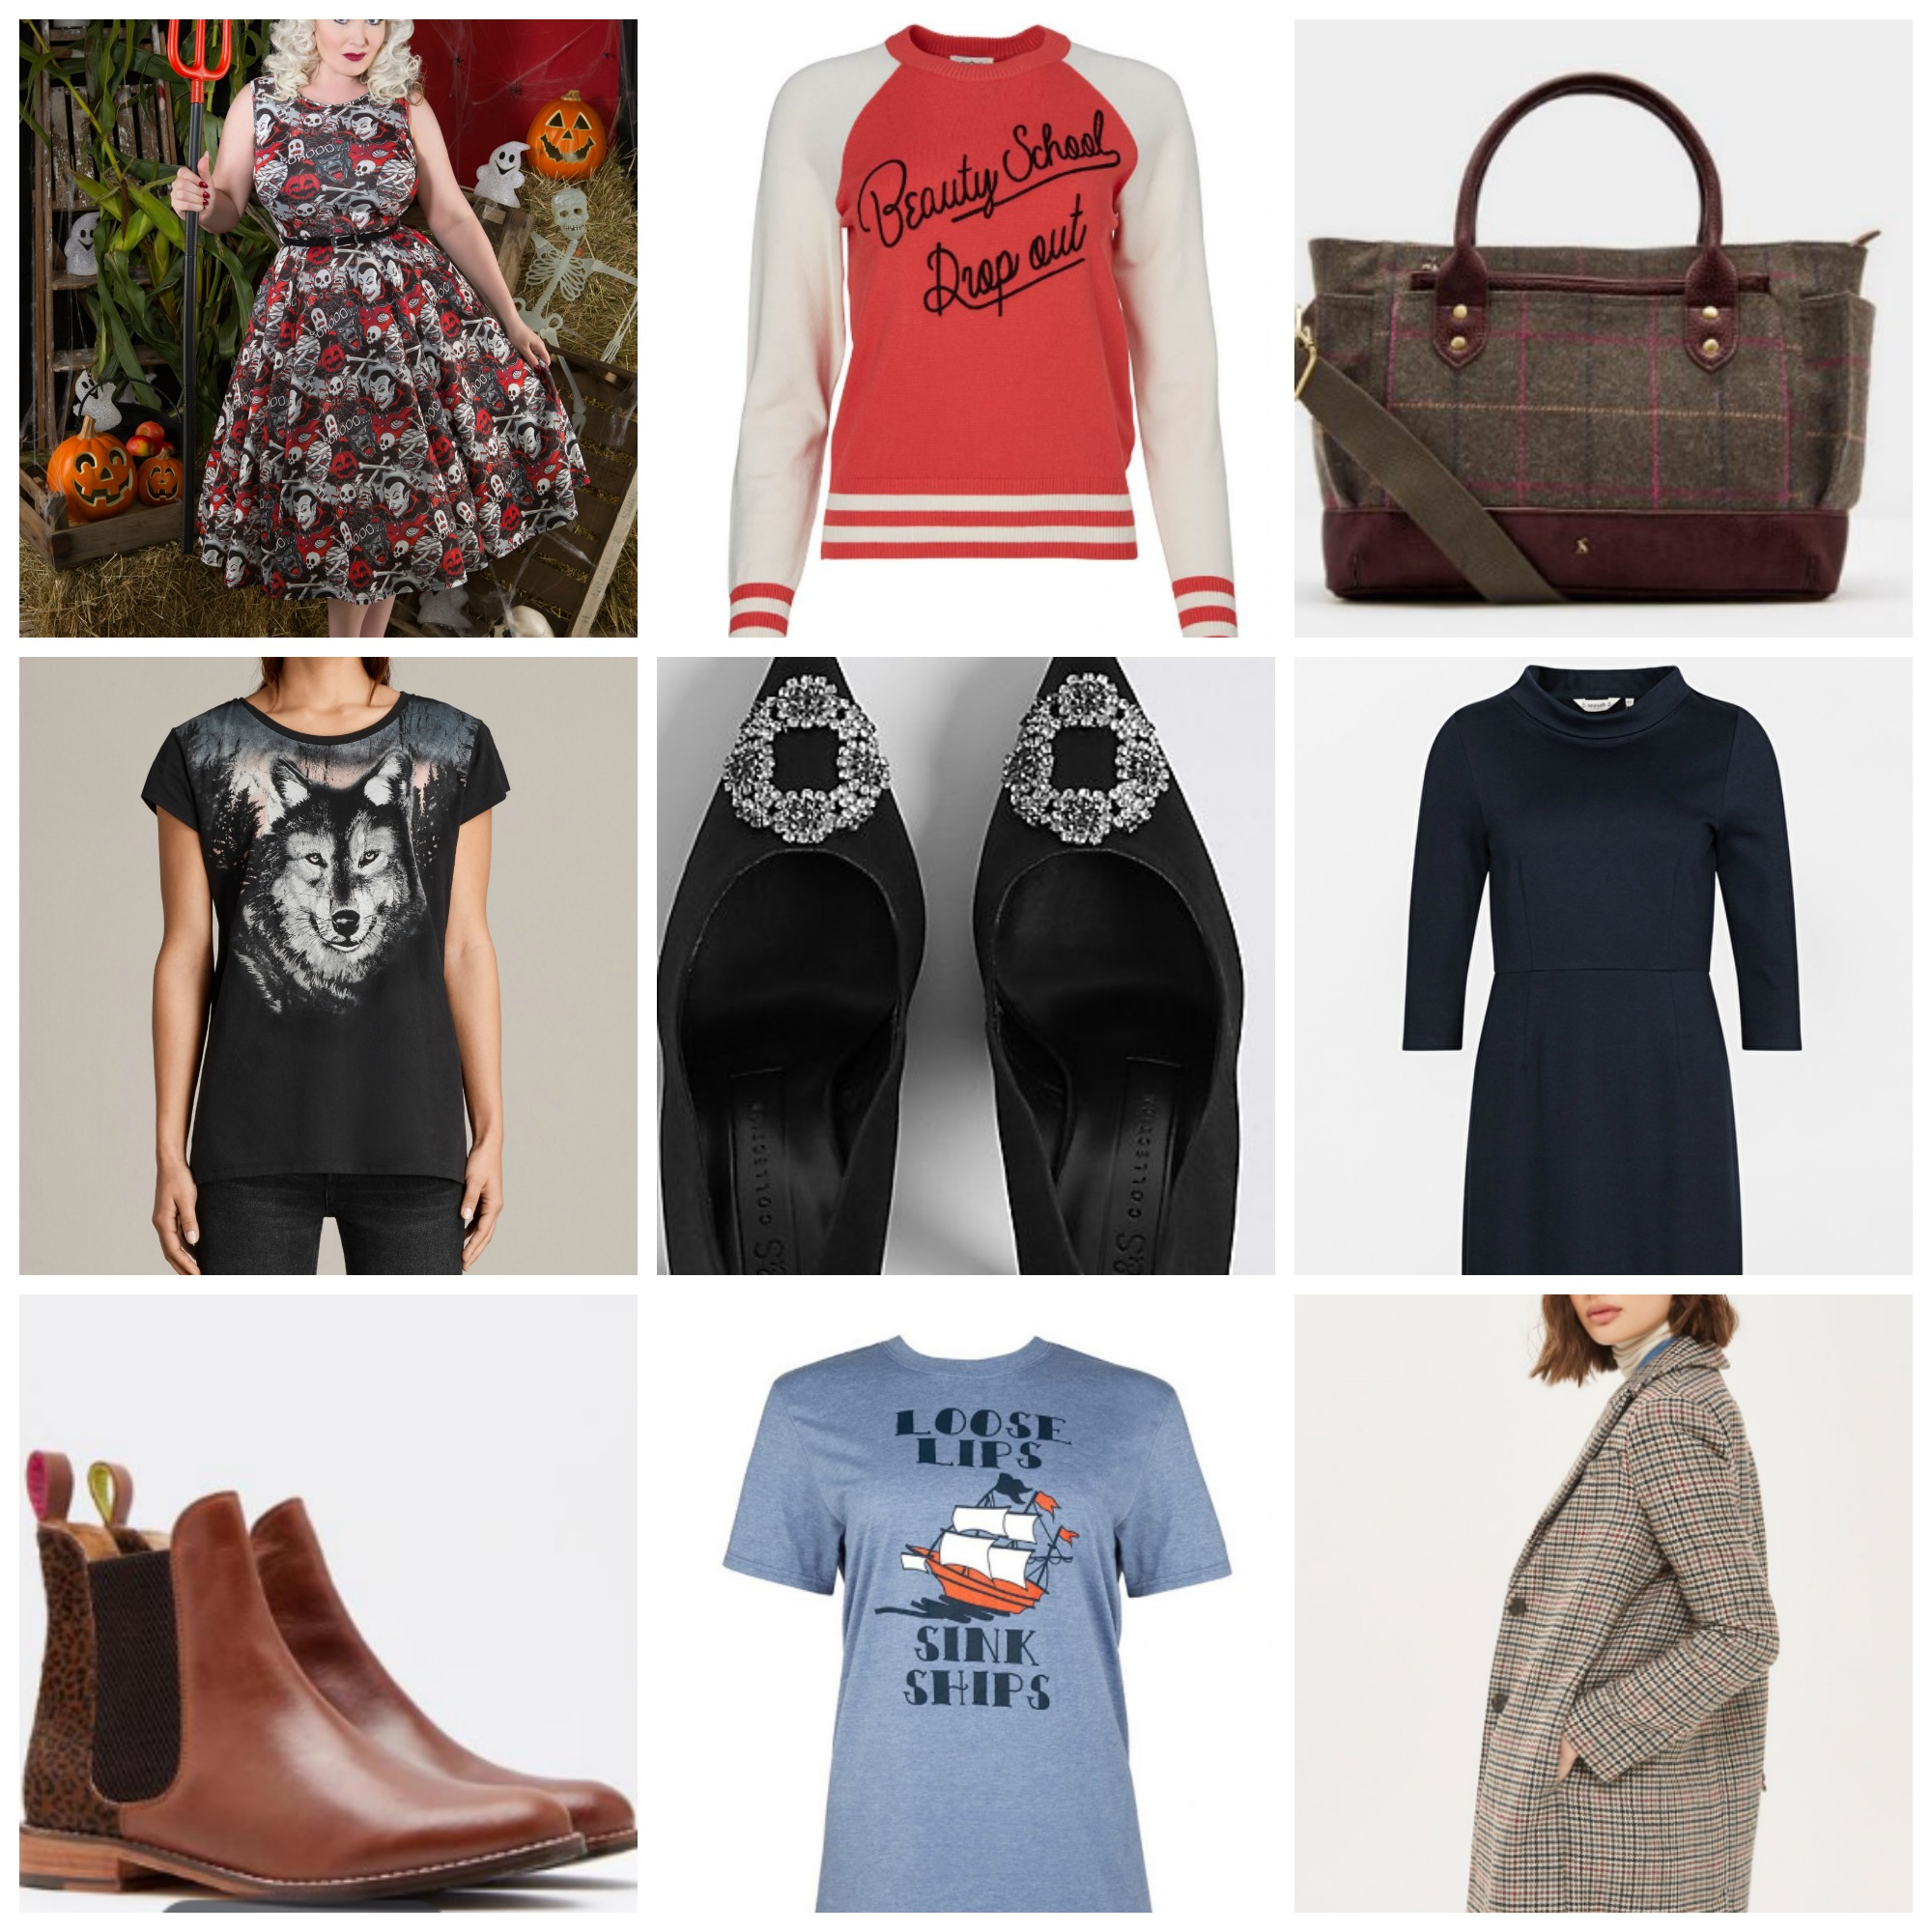 67d89091791d1 Clothing Archives - Madame Gourmand lifestyleMadame Gourmand lifestyle